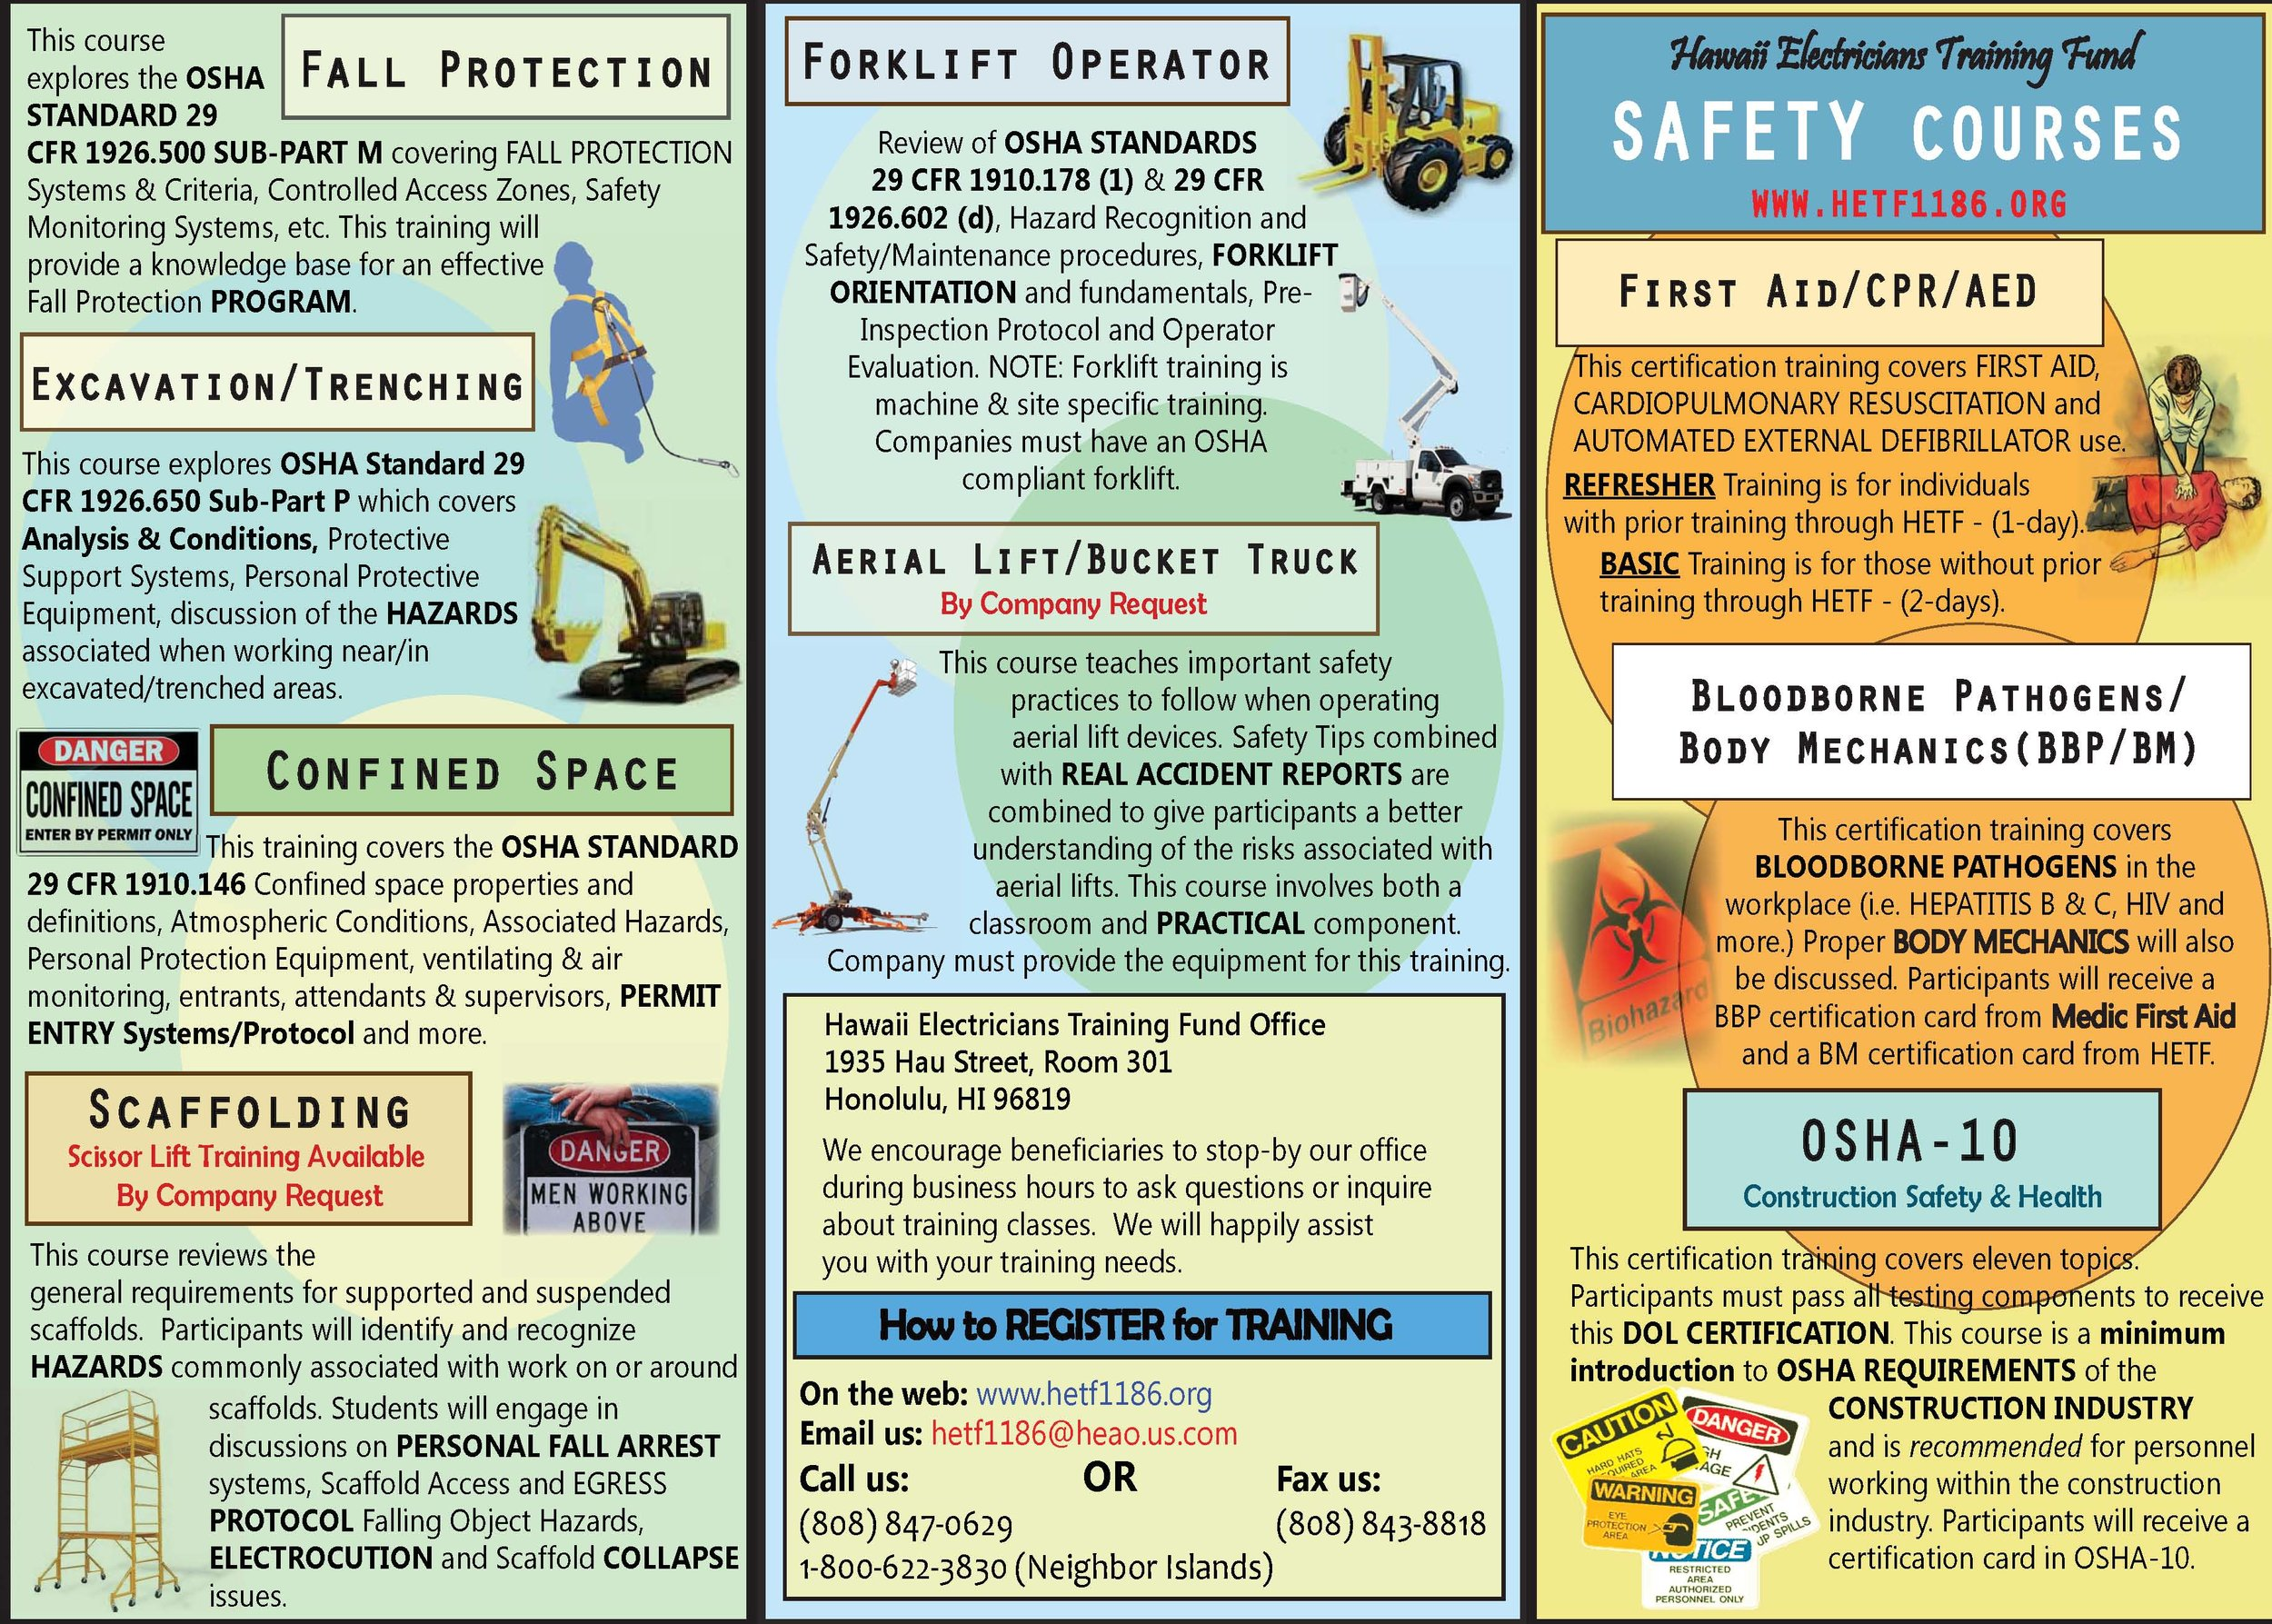 SAFETY+CLASS+BROCHURE+PAGE+1++2+11-04-14+EDIT+-+Copy_Page_1.jpg